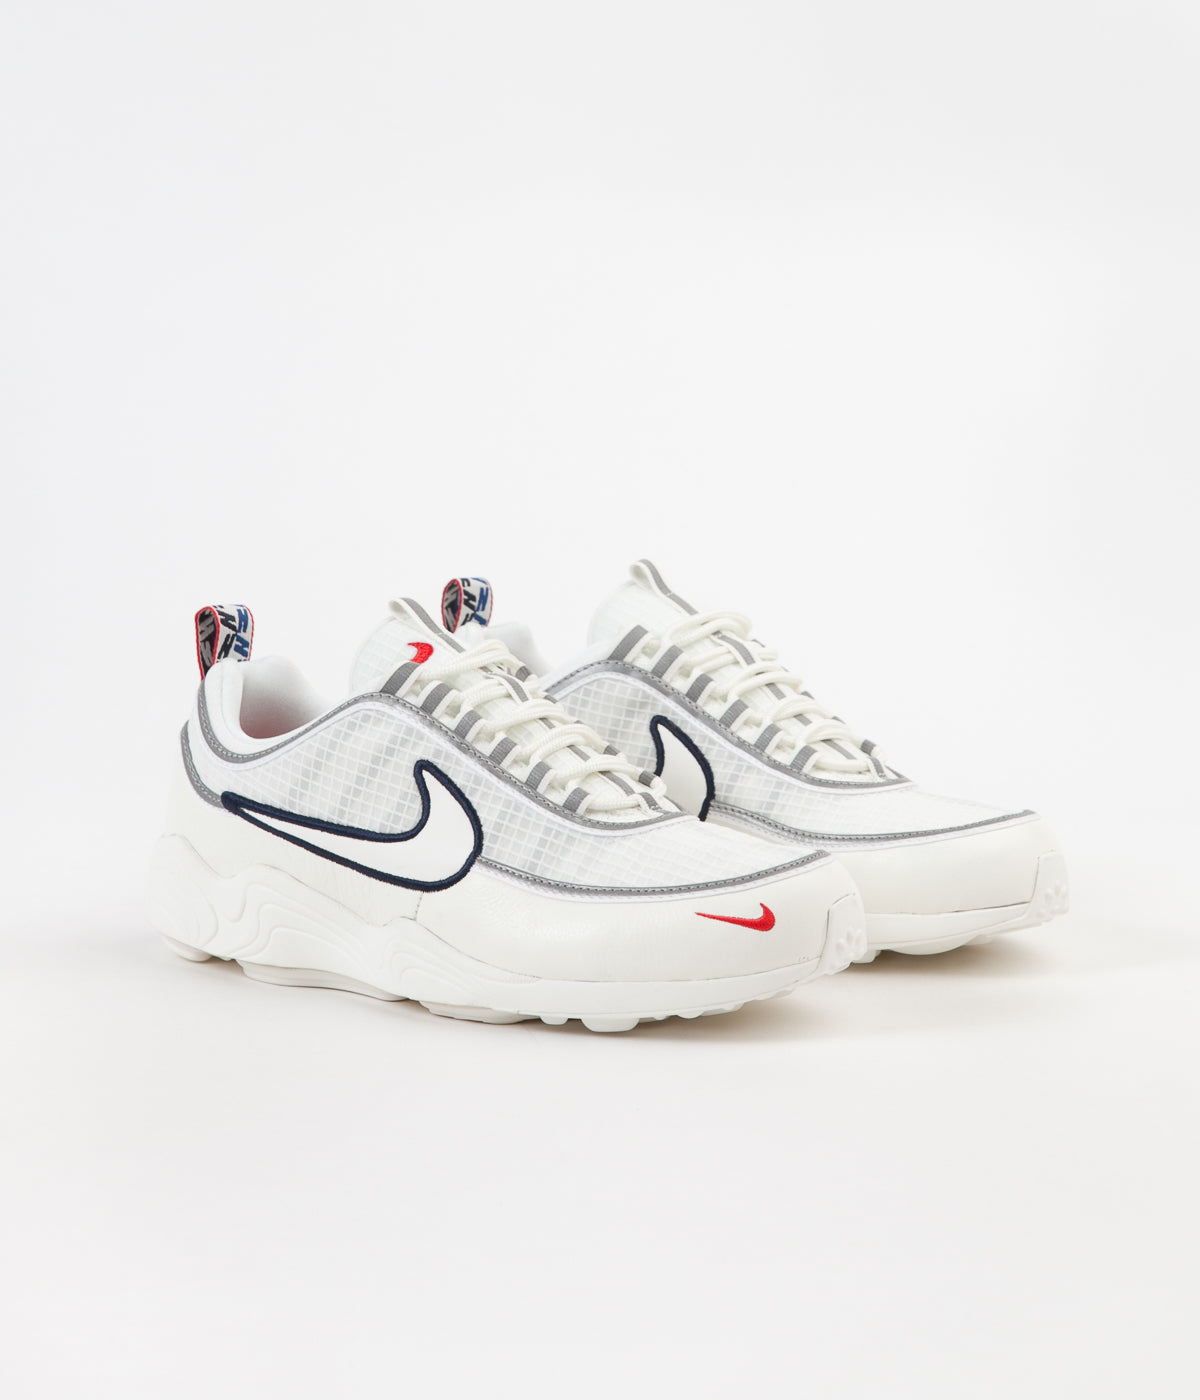 online store 1d9f2 70c10 ... Nike Air Zoom Spiridon SE Shoes - Sail   University Red - Obsidian ...